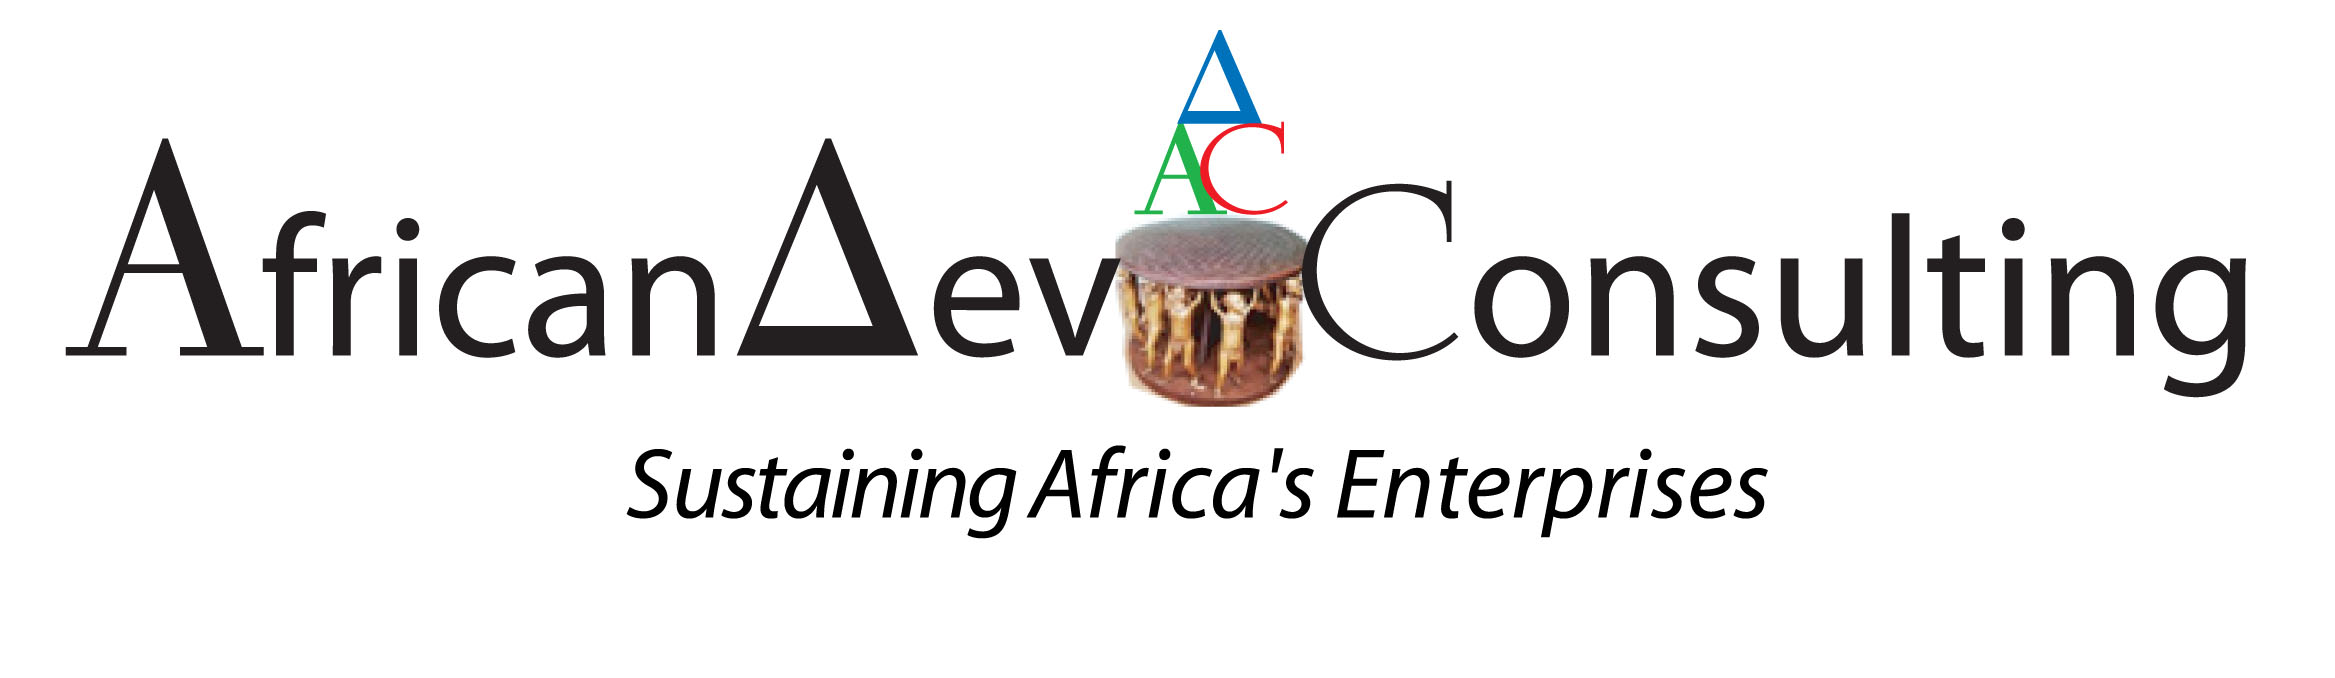 African Development Consulting .Sarl